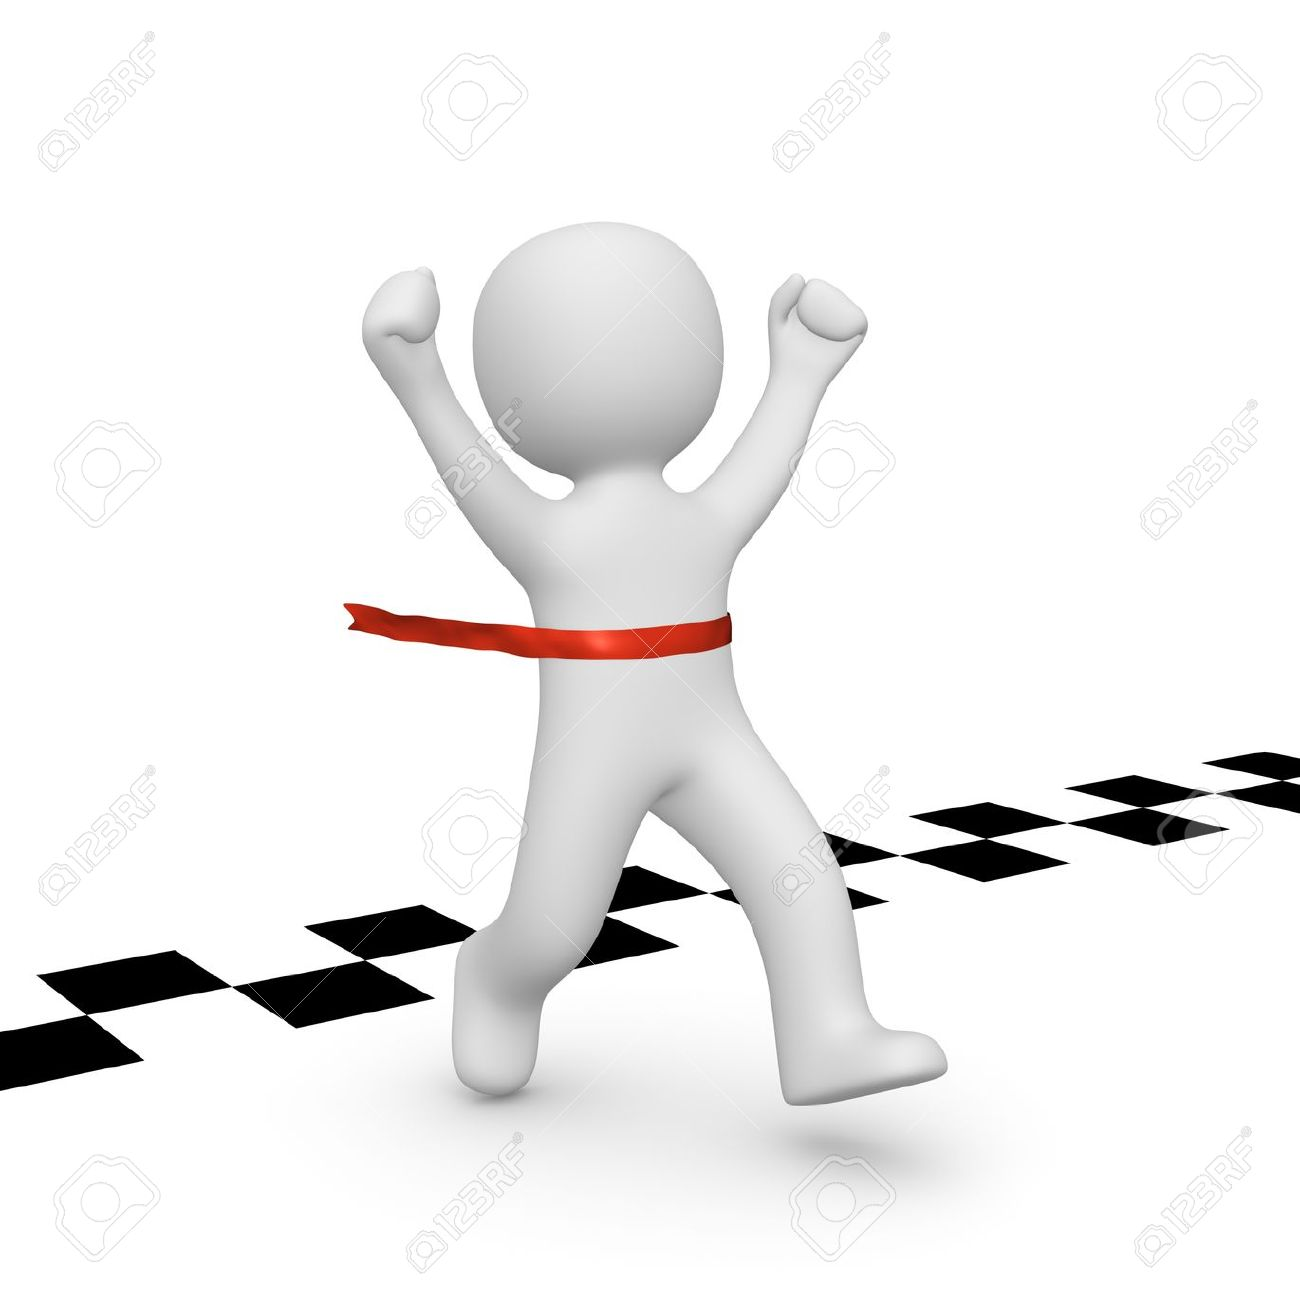 3d Man Has Reached The Finish Line. 3d Rendering. Stock Photo.